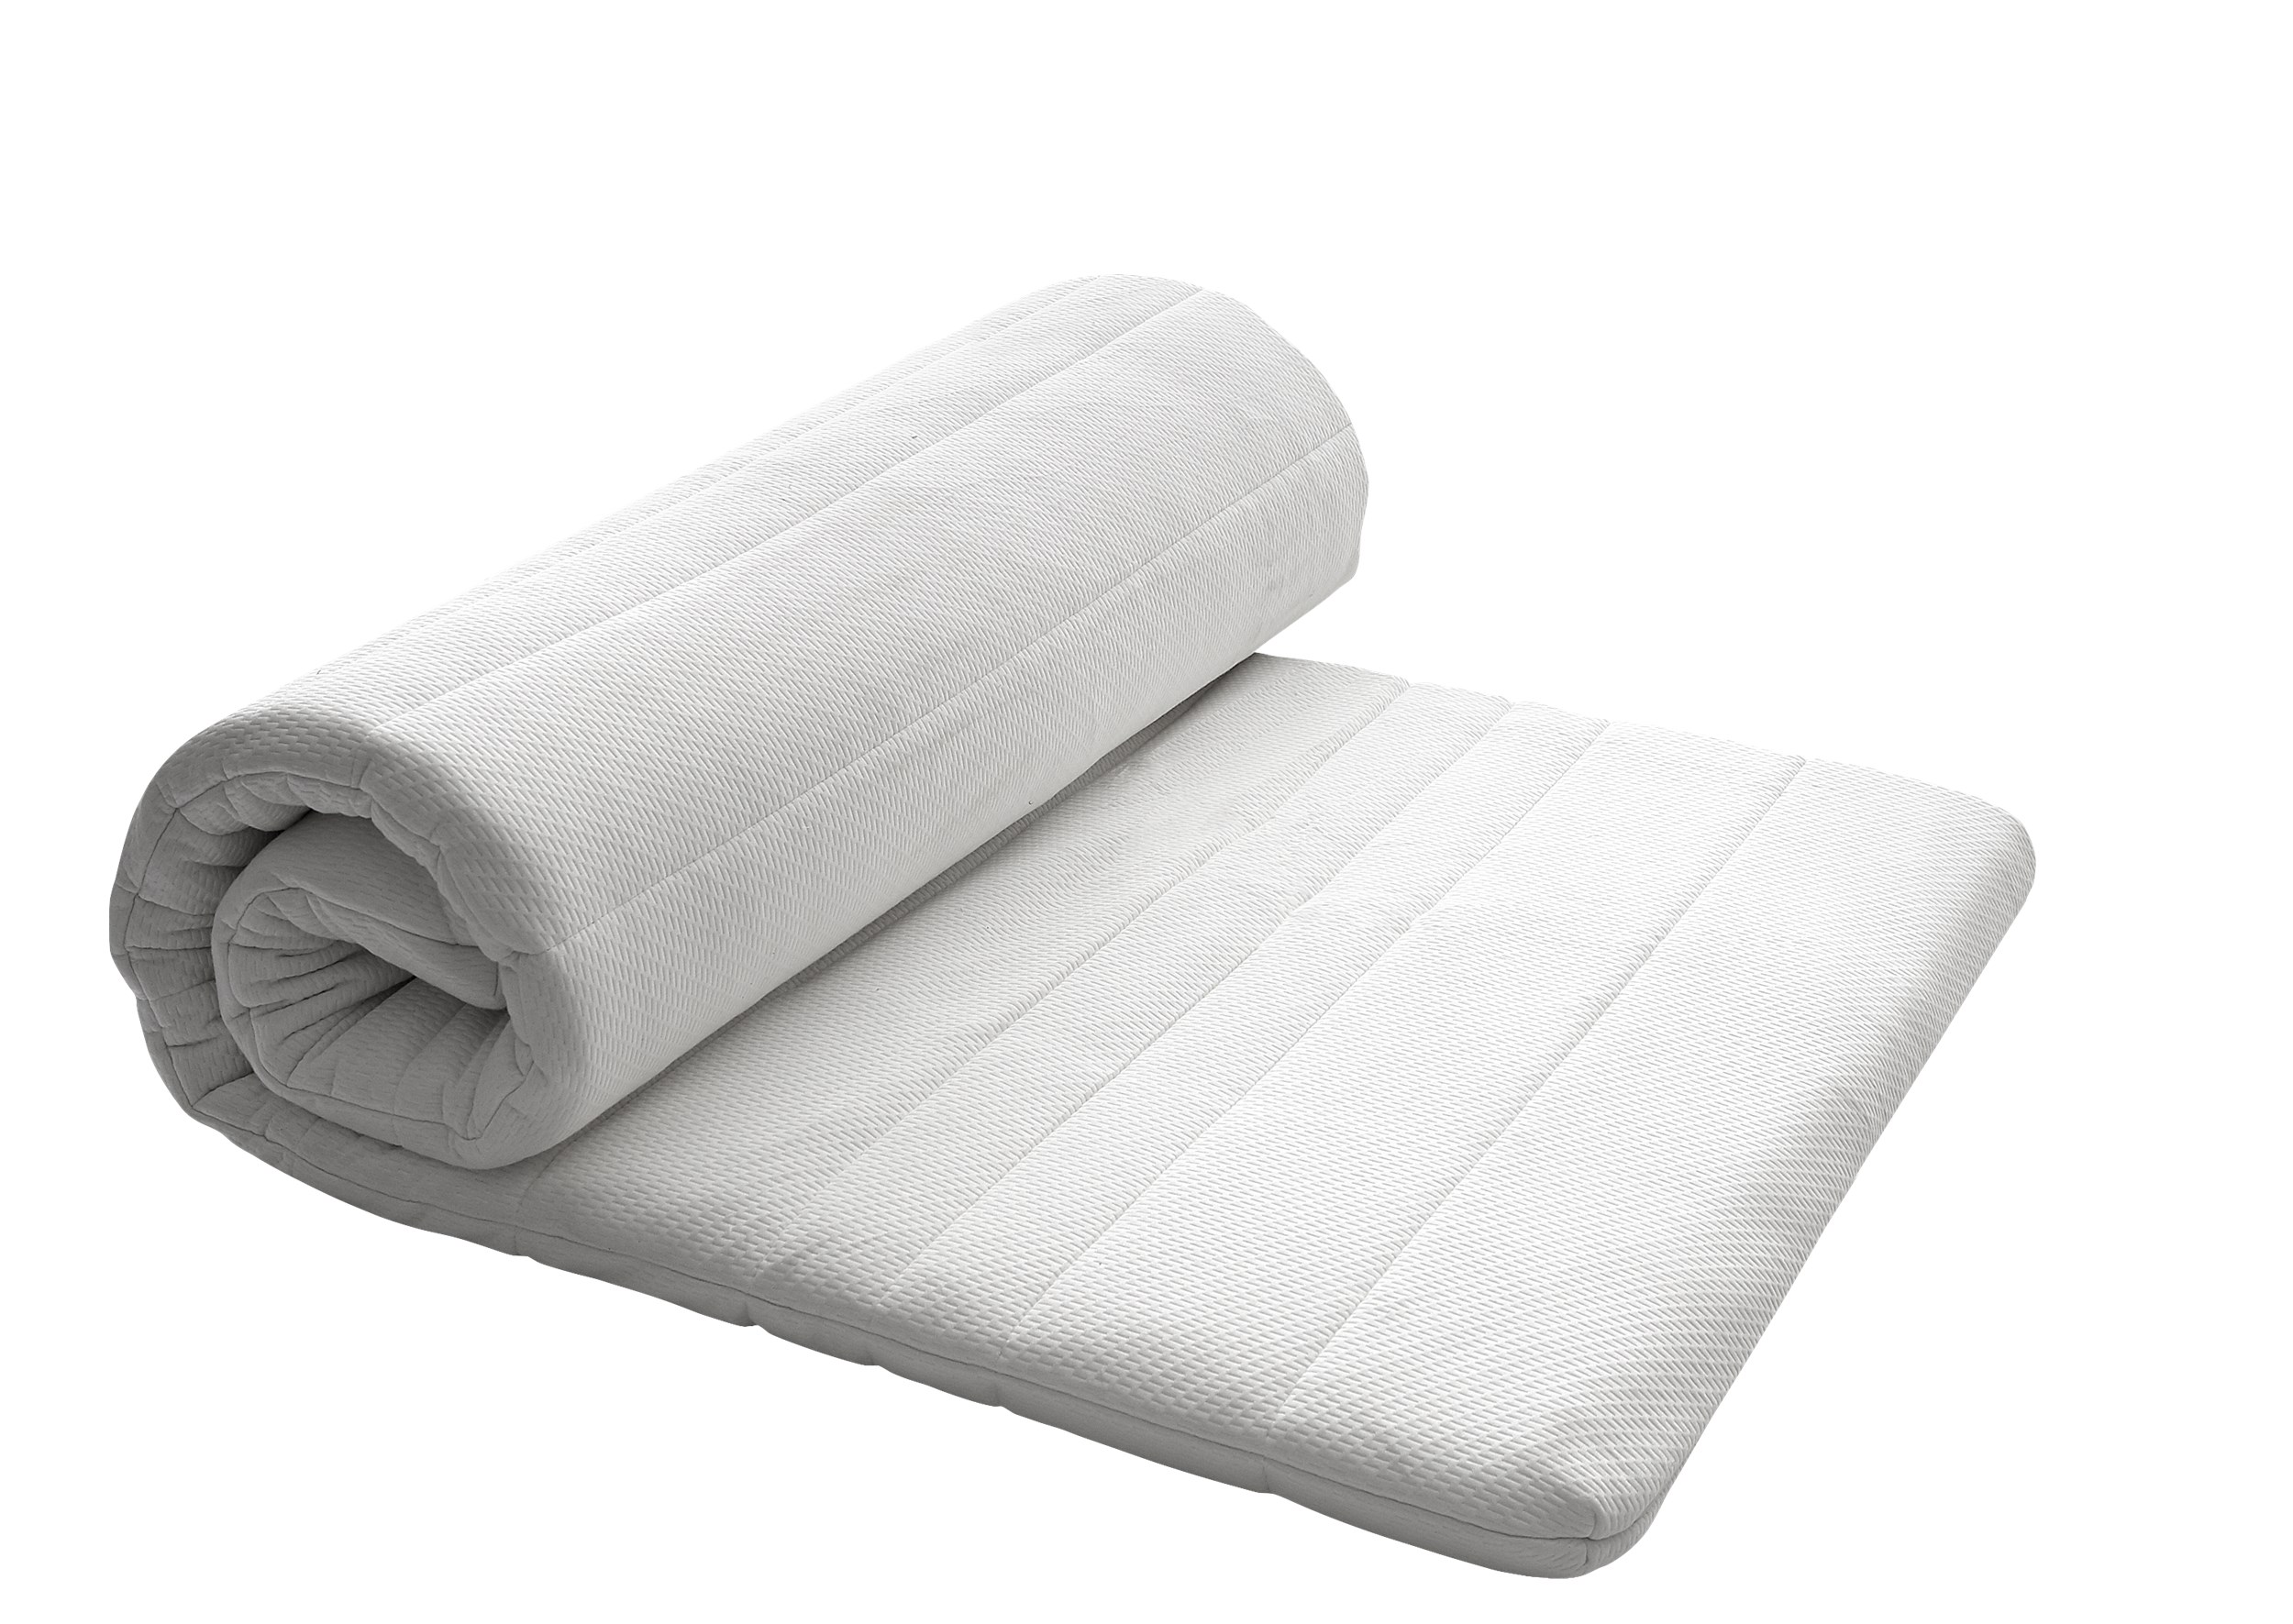 Nocturne Sleep Ultimate Topmadras 90 x 200 x 8 cm - T500 betræk og 5 cm latex